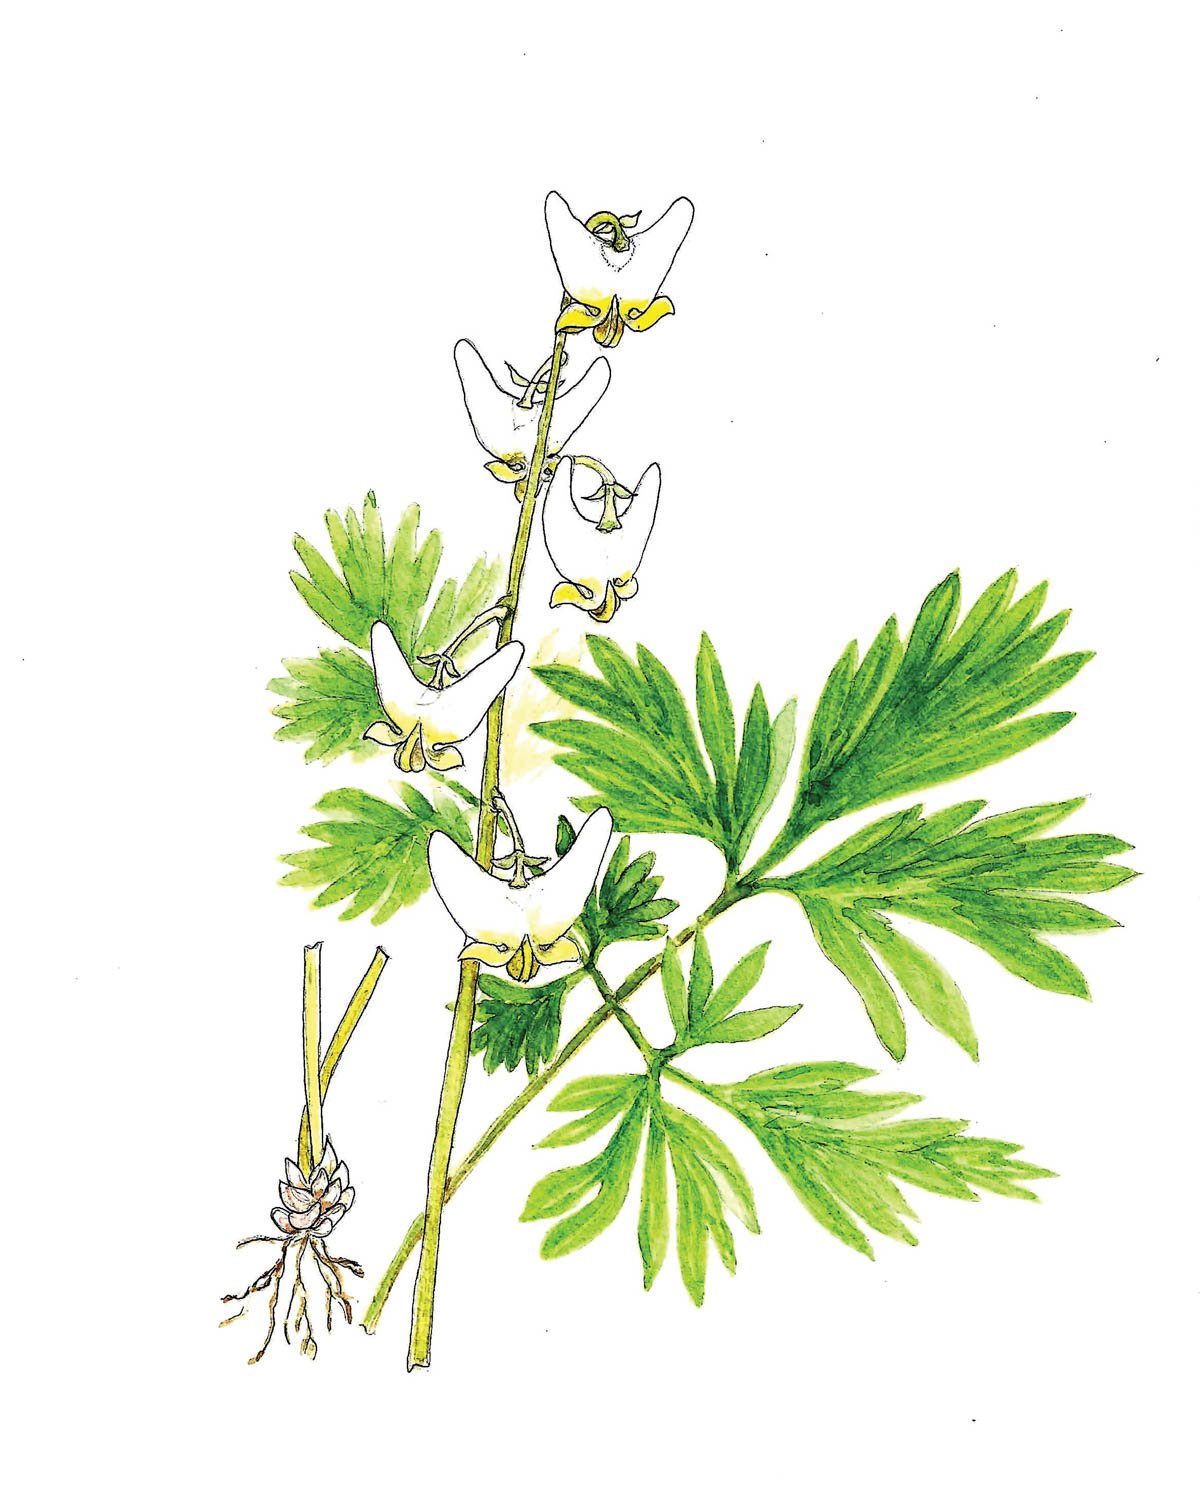 In Bloom: Dutchman's Breeches